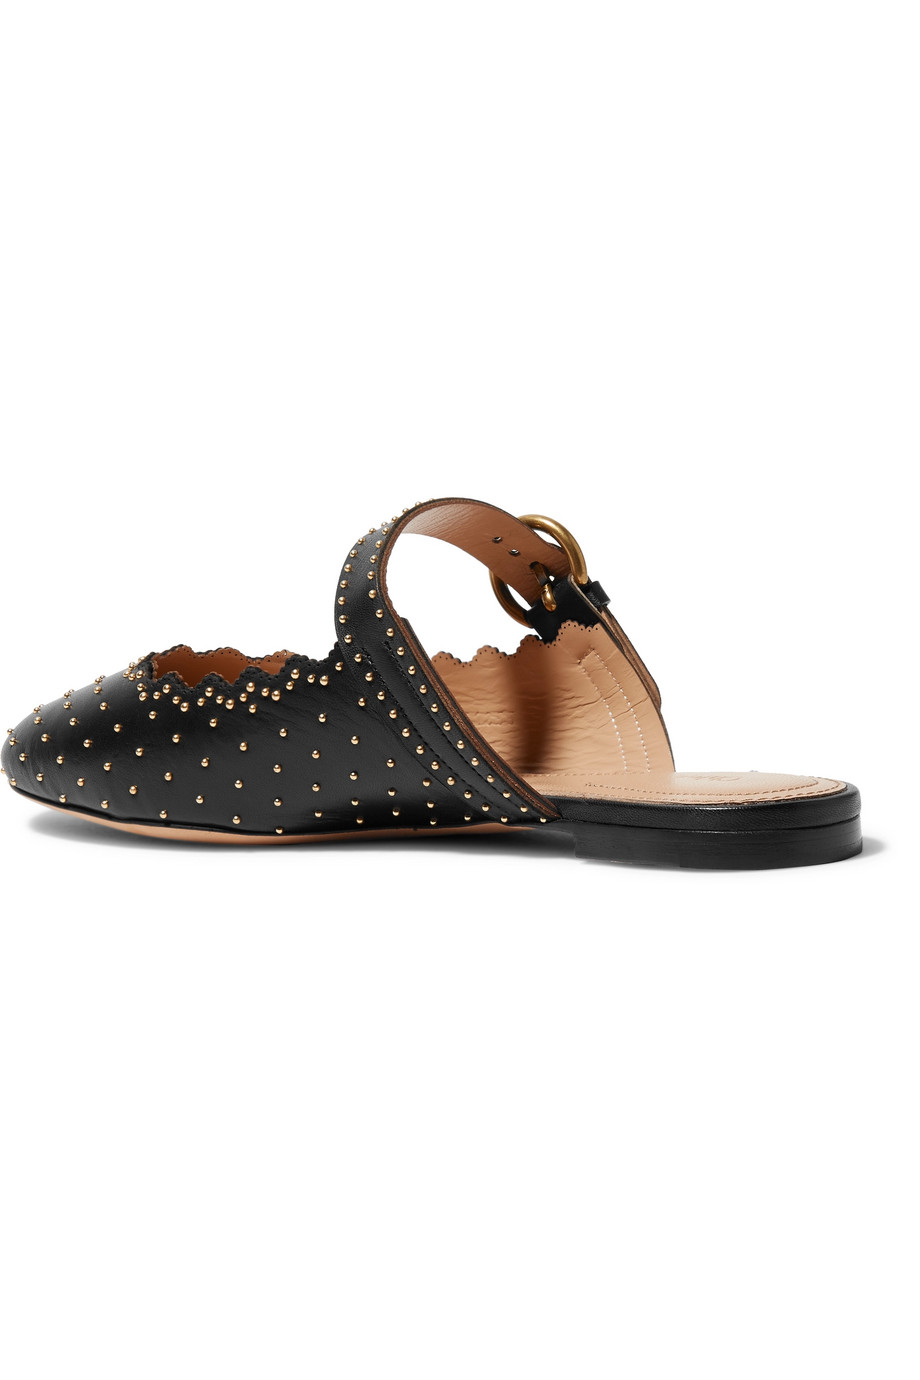 Leather slippers Chloé buy Leather slippers Chloé internet shop